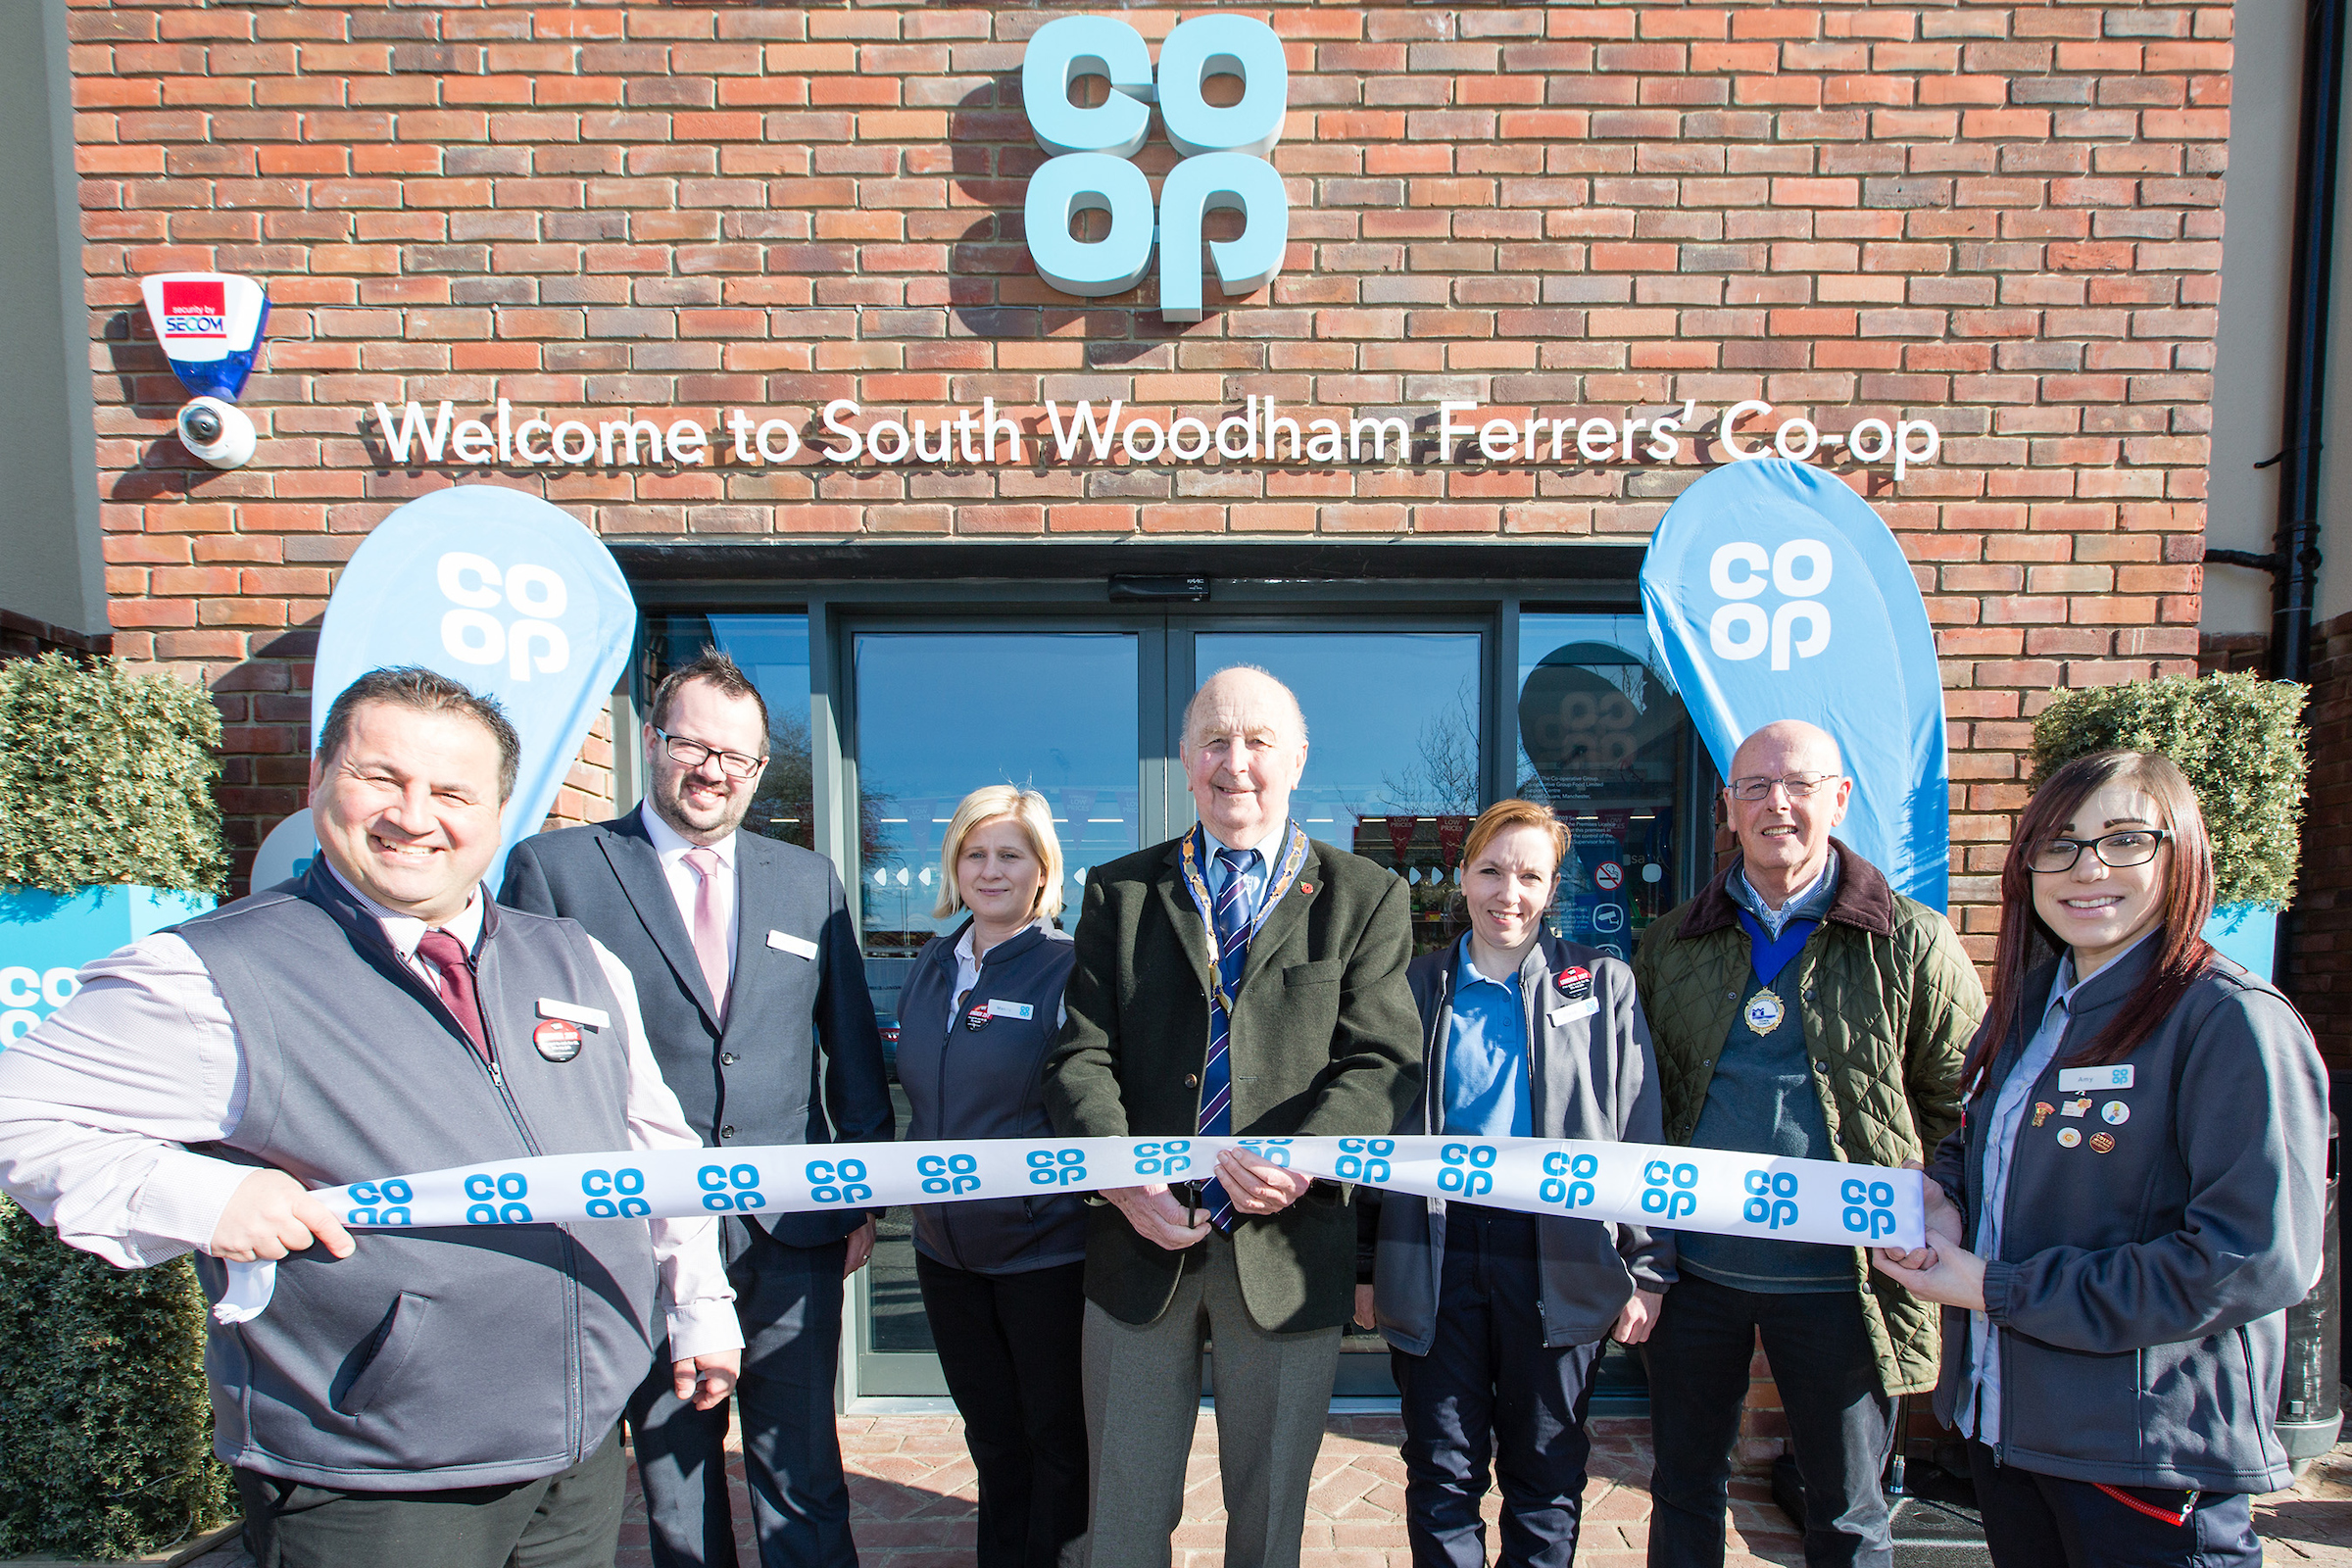 New Co-op opens in South Woodham Ferrers